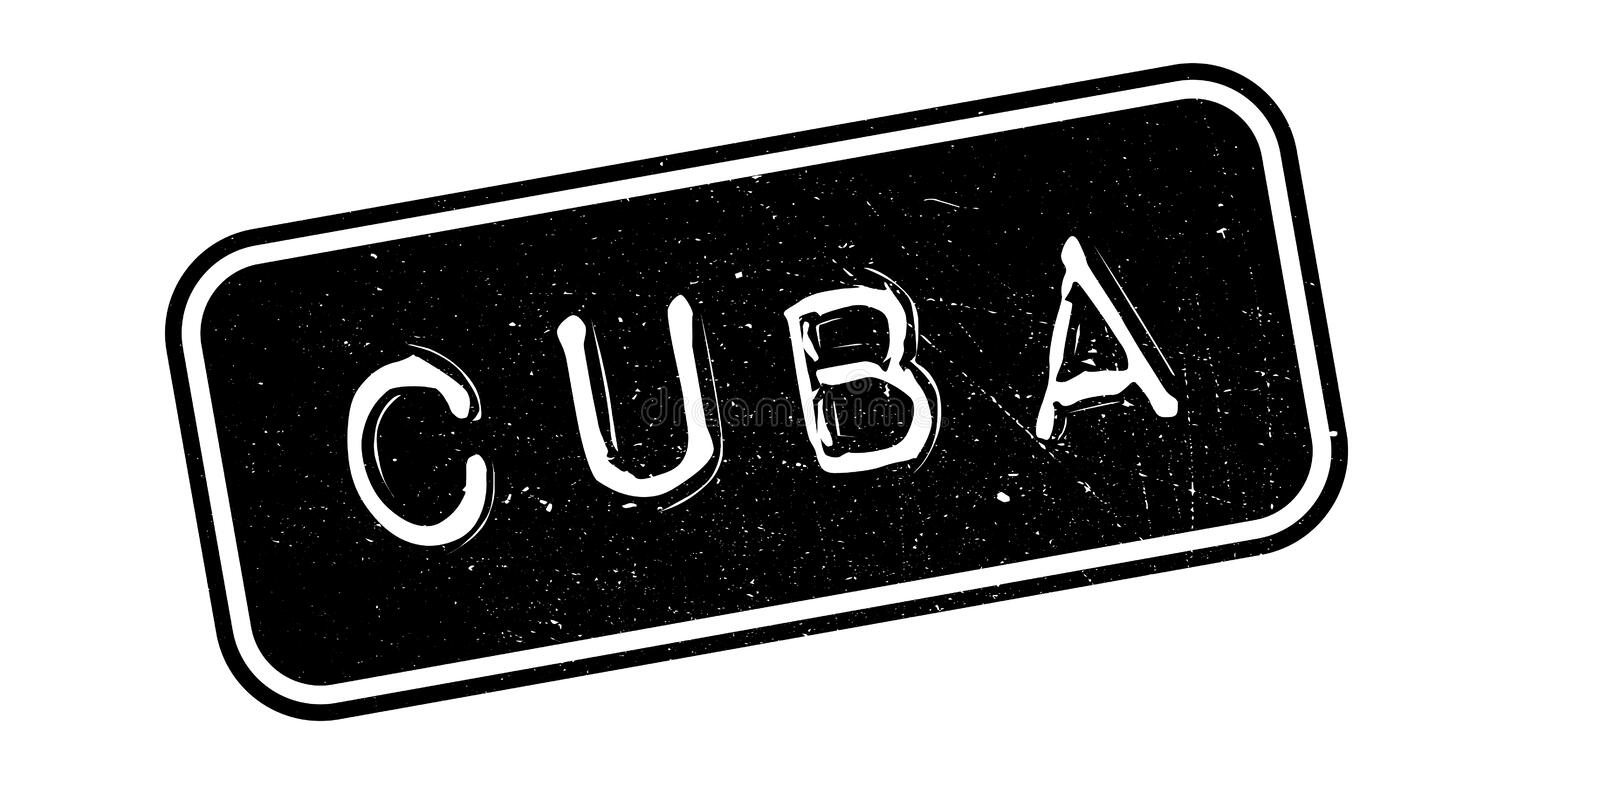 Cuba rubber stamp royalty free illustration